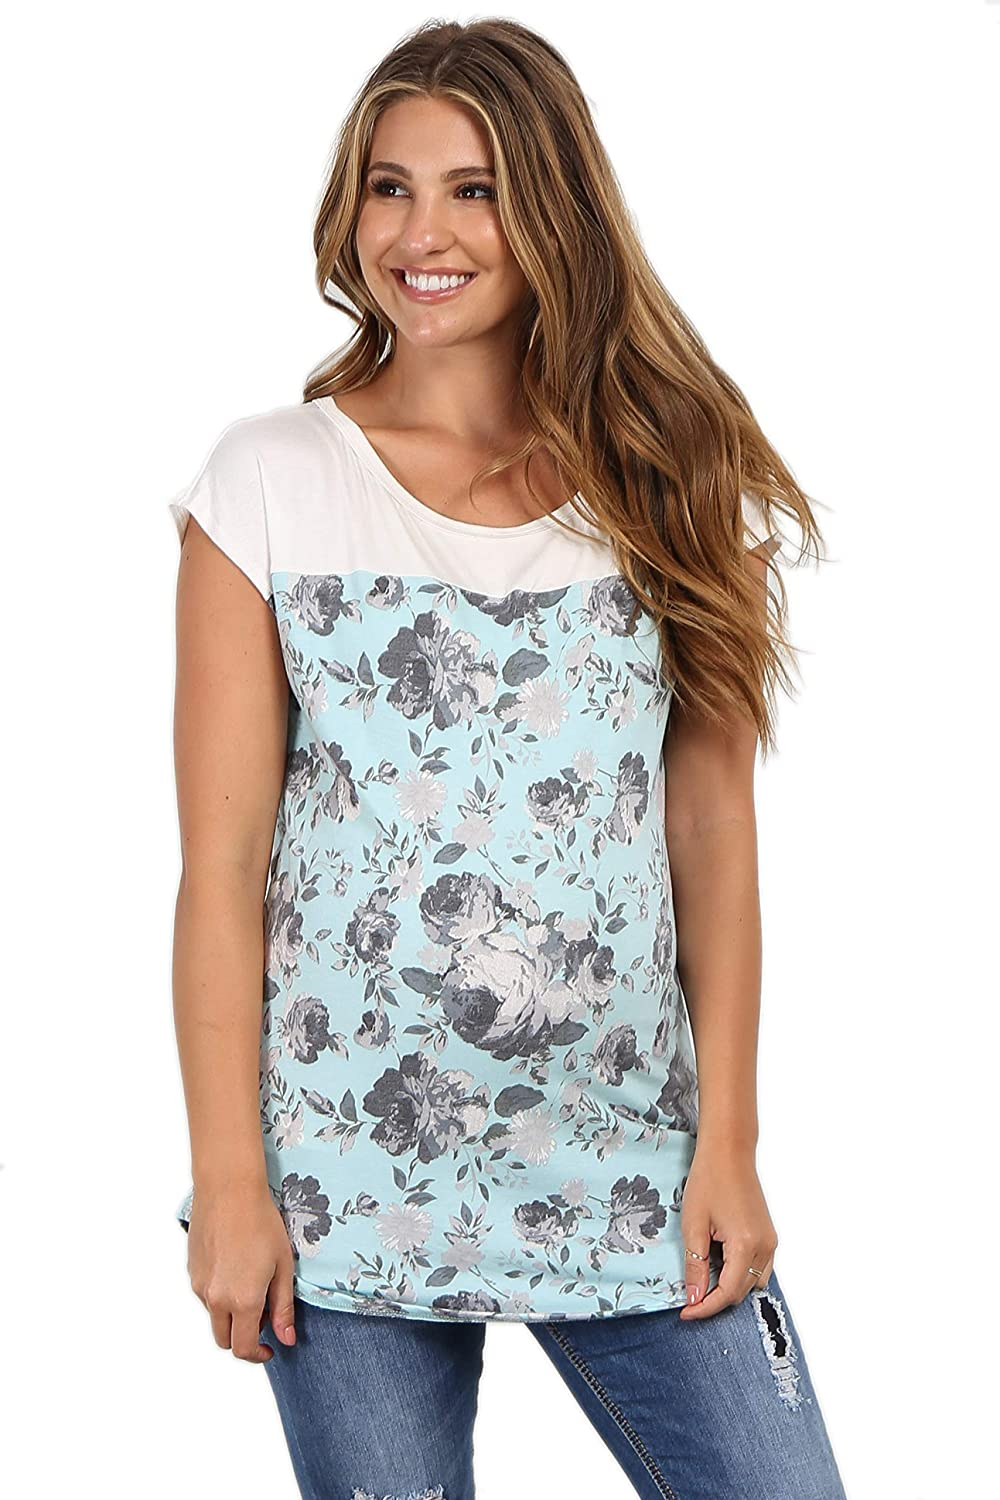 PinkBlush Maternity Floral Colorblock Short Sleeve Top